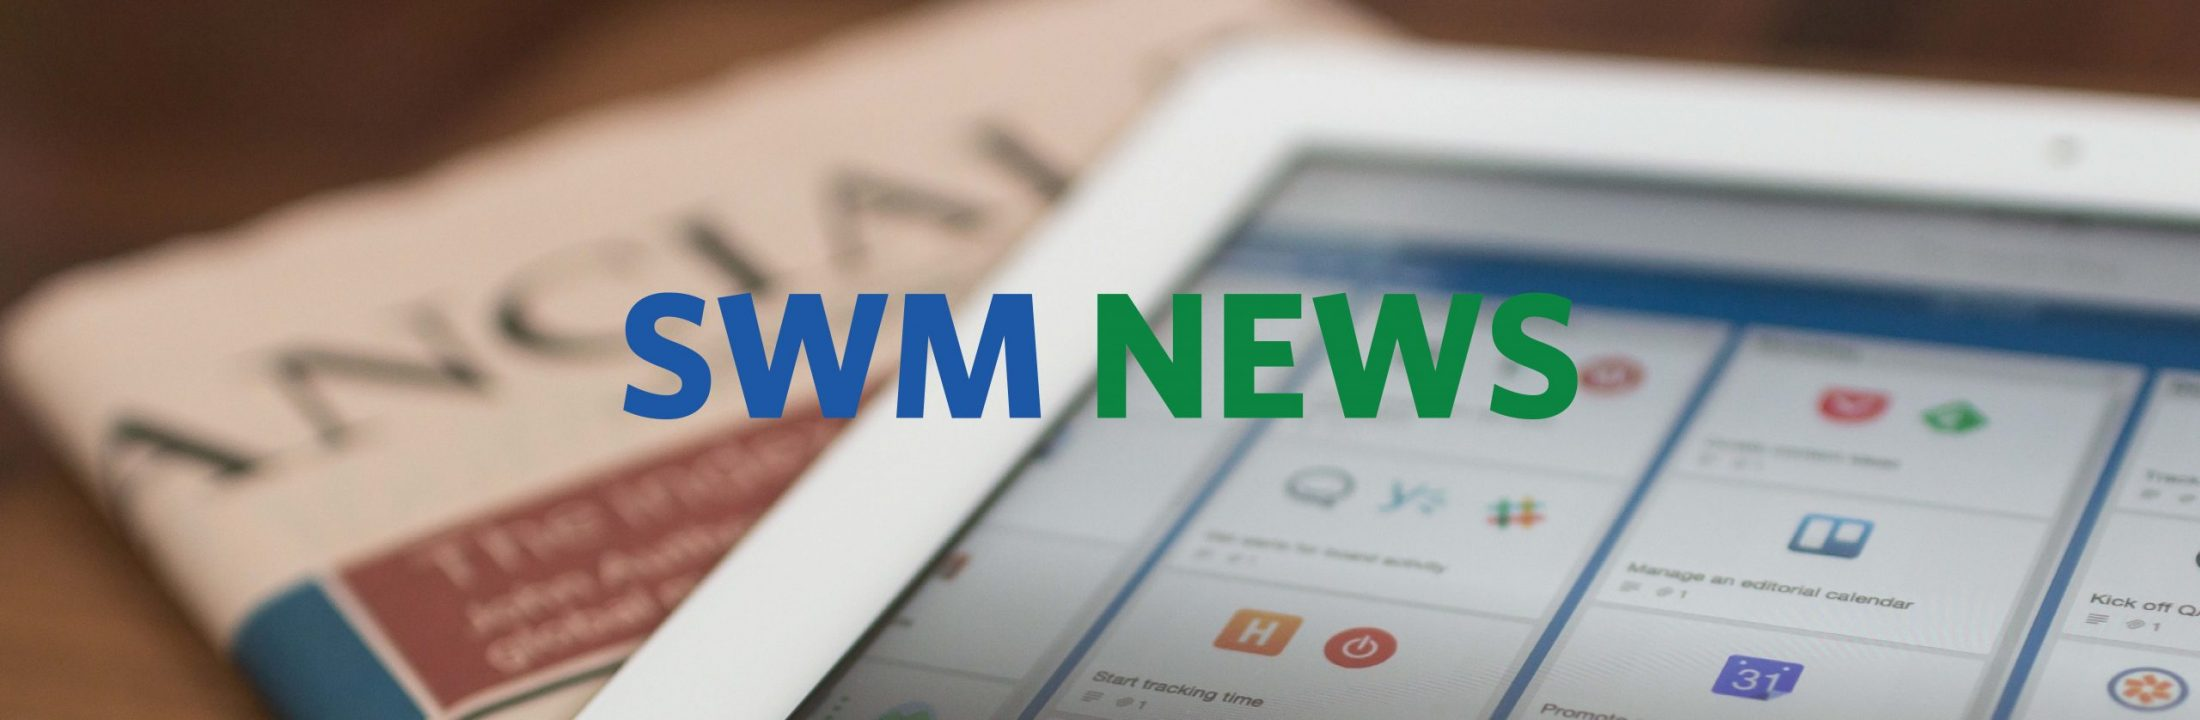 Background - SWM NEWS V1